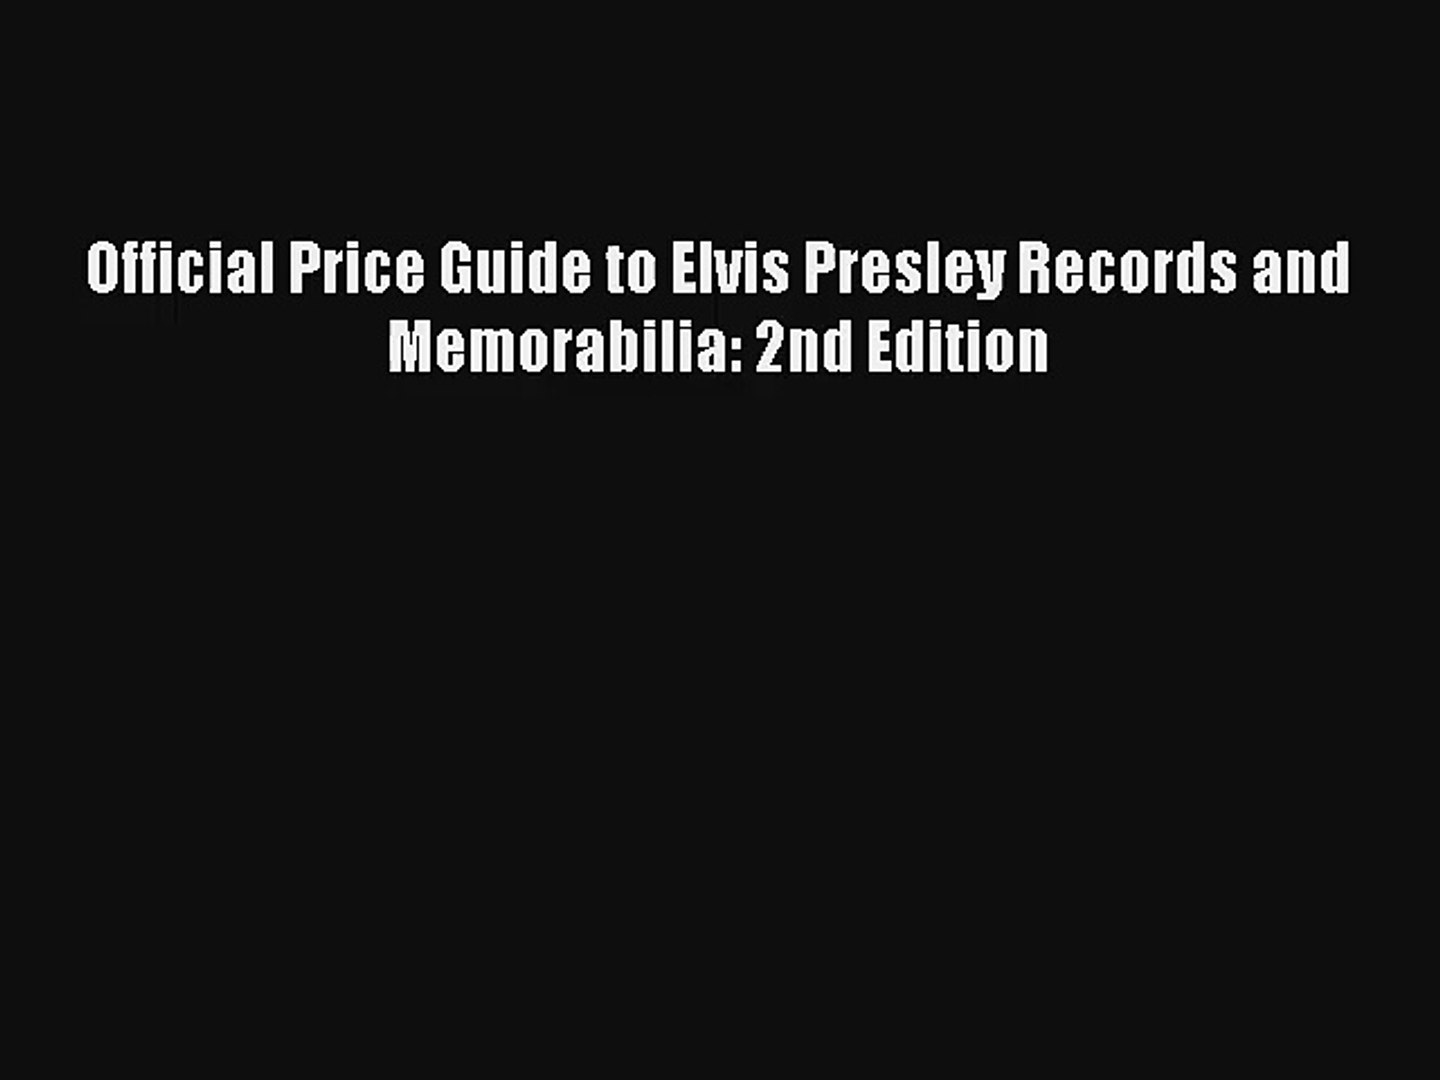 Read Official Price Guide to Elvis Presley Records and Memorabilia: 2nd Edition Ebook Free